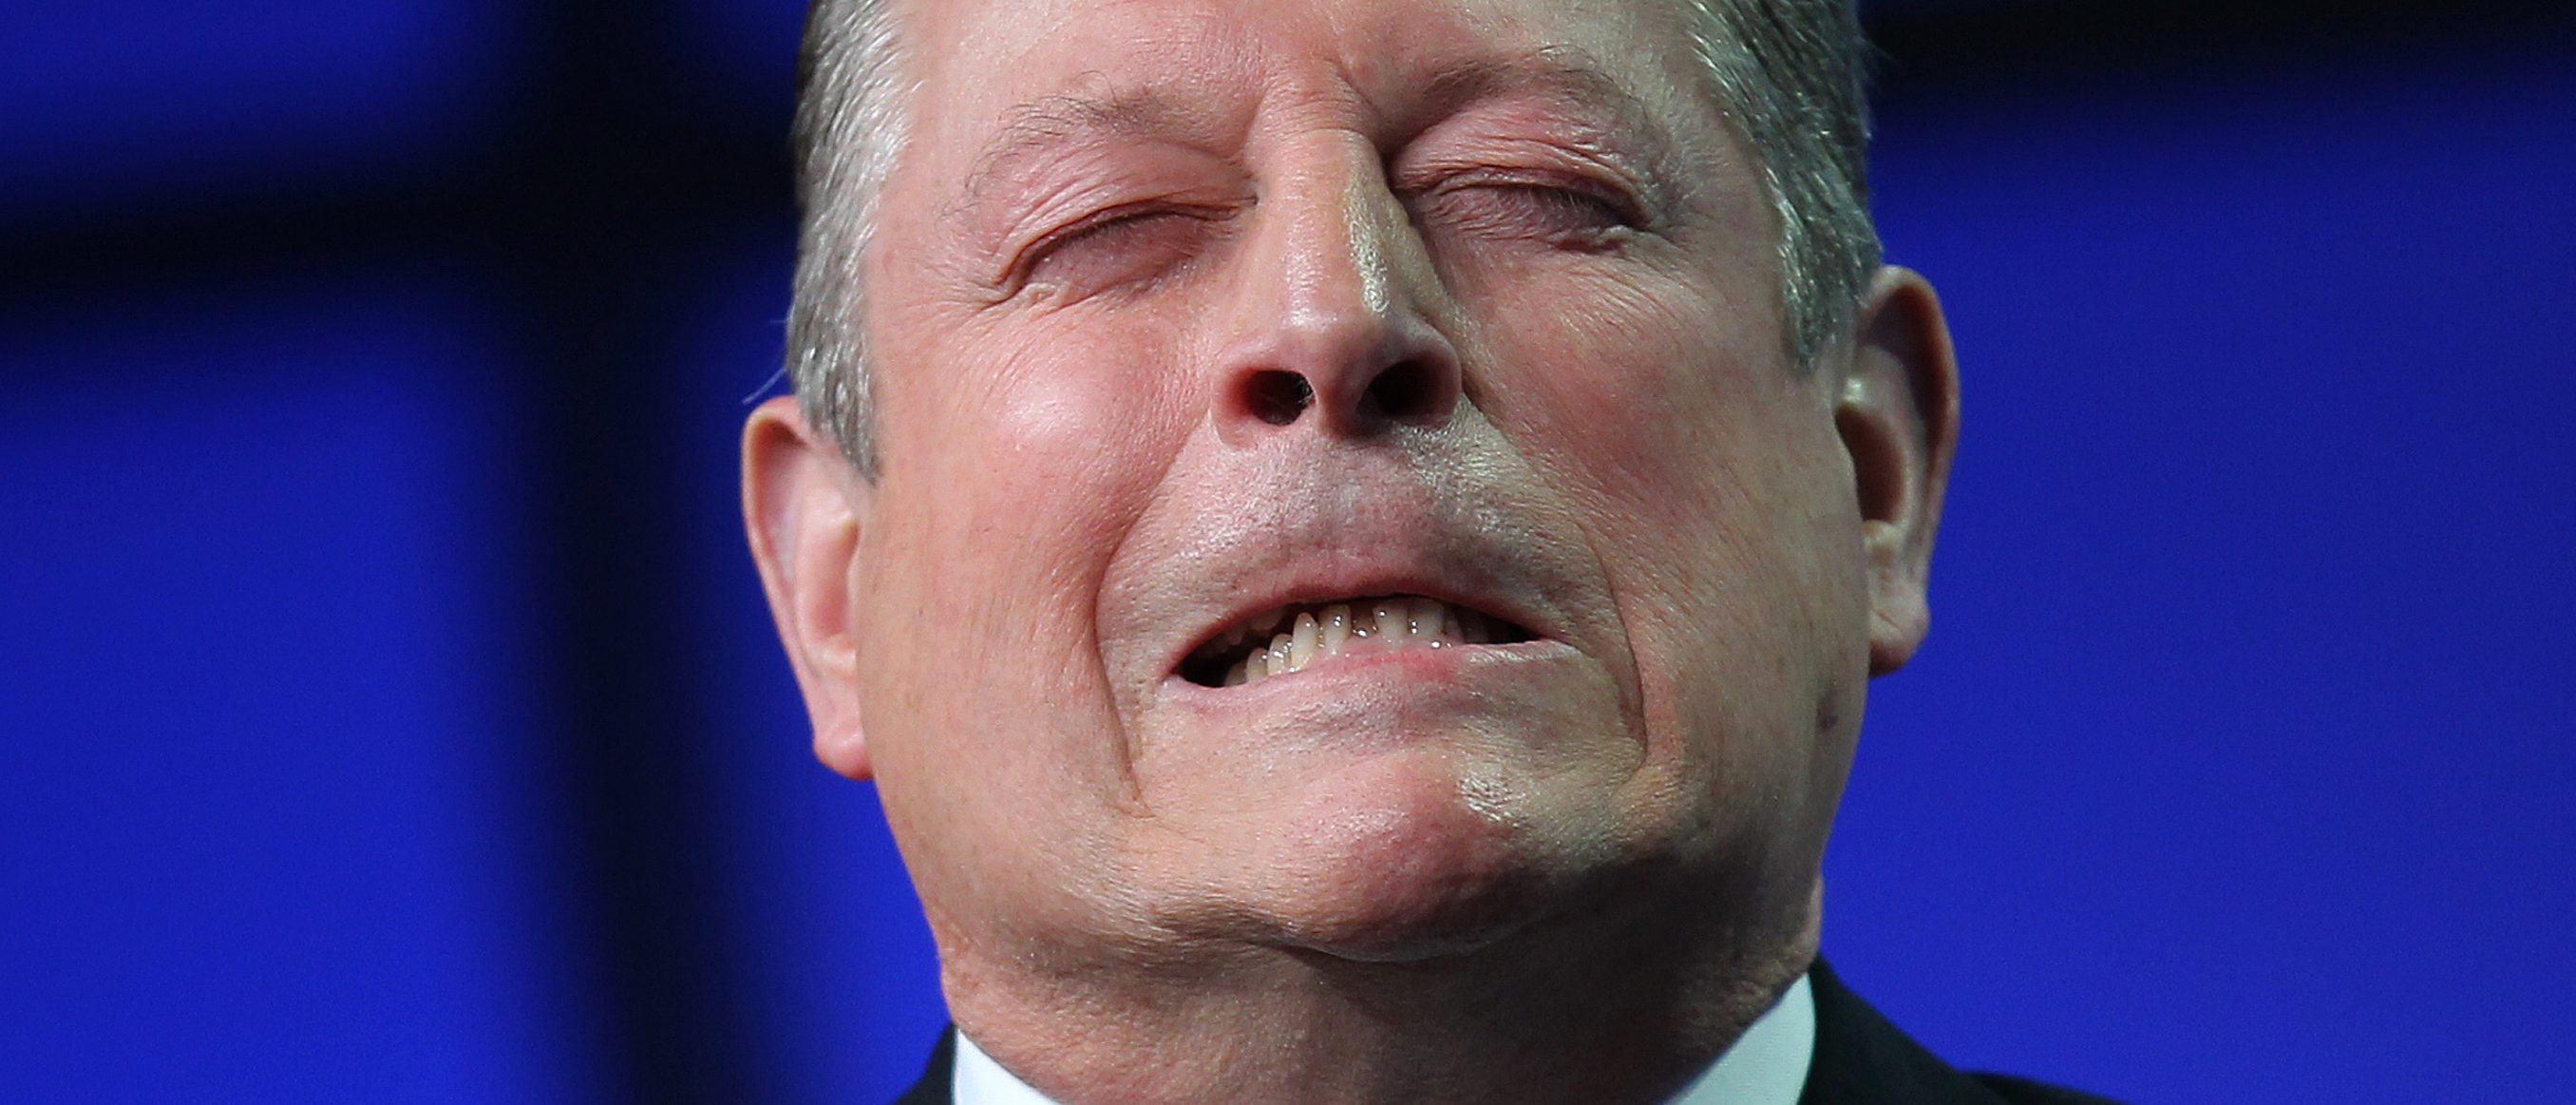 Former U.S. Vice President Al Gore emphasizes a point as he speaks at the Milken Institute Global Conference in Beverly Hills, California April 30, 2013. REUTERS/David Ncnew